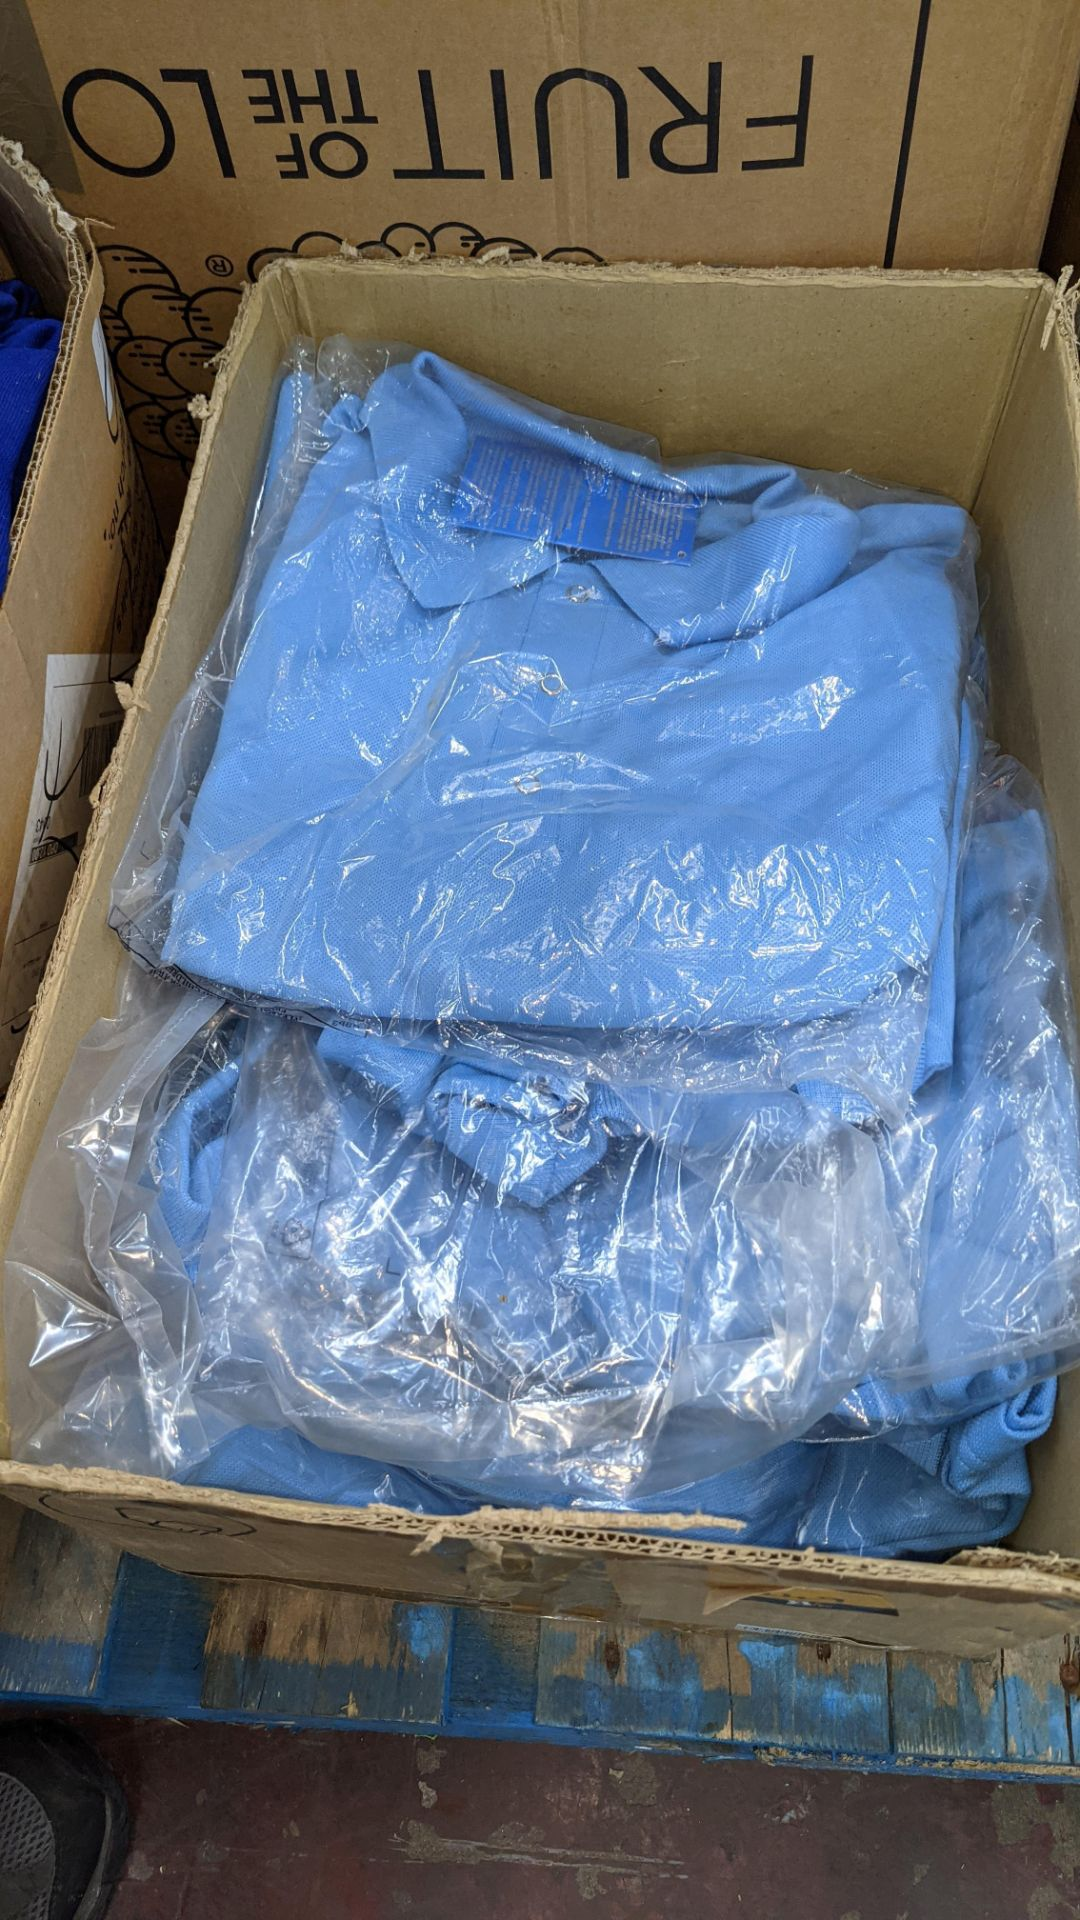 Approx 10 off pale blue polo shirts - 1 box - Image 2 of 5